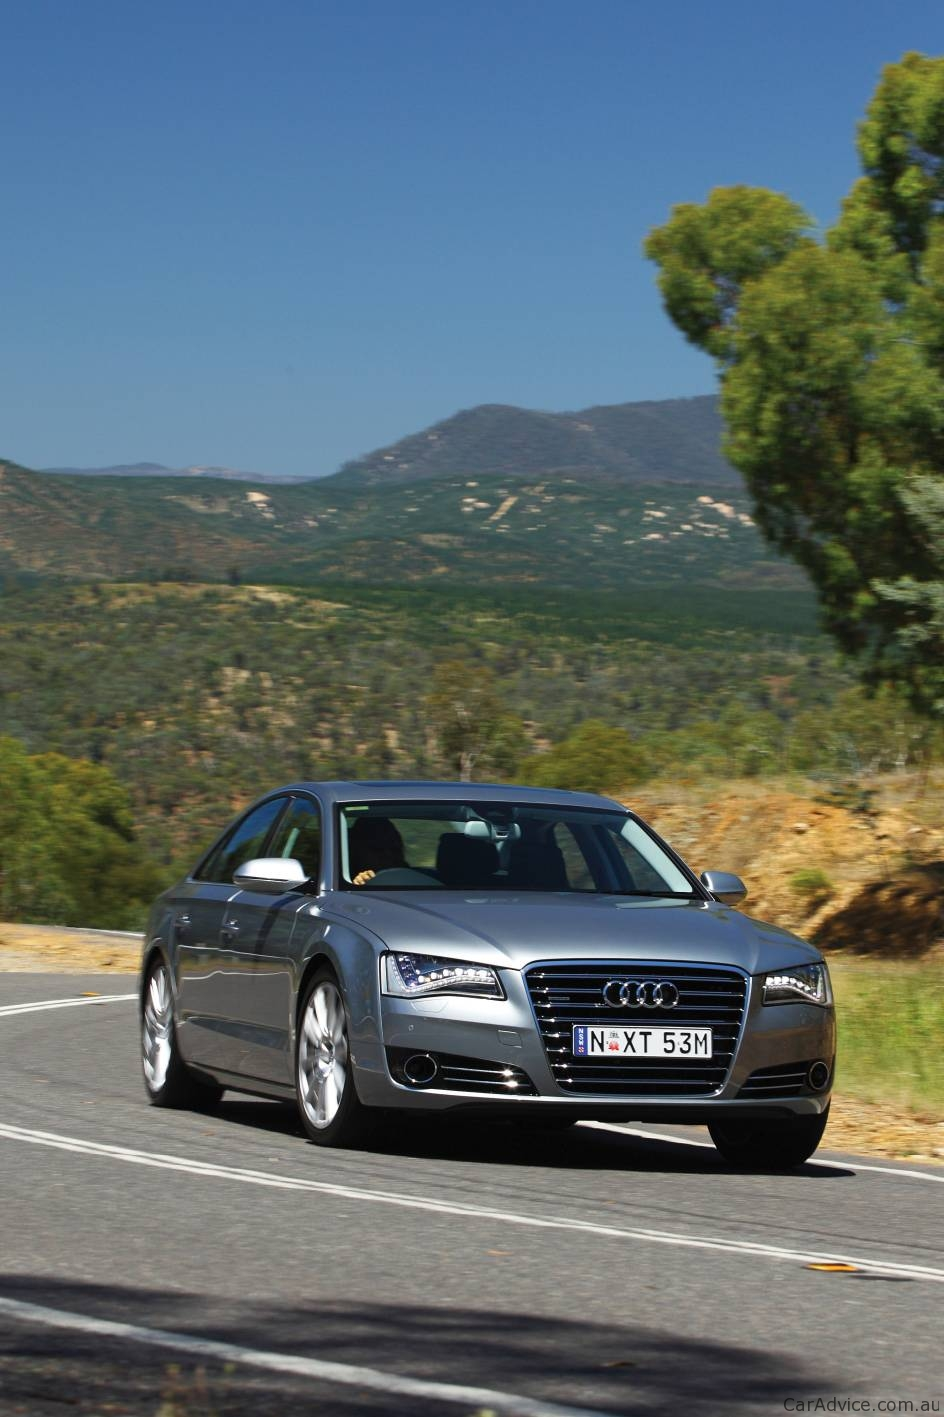 2011 audi a8 range gets 3 0 tdi 4 2 tdi engines photos 1 of 17. Black Bedroom Furniture Sets. Home Design Ideas